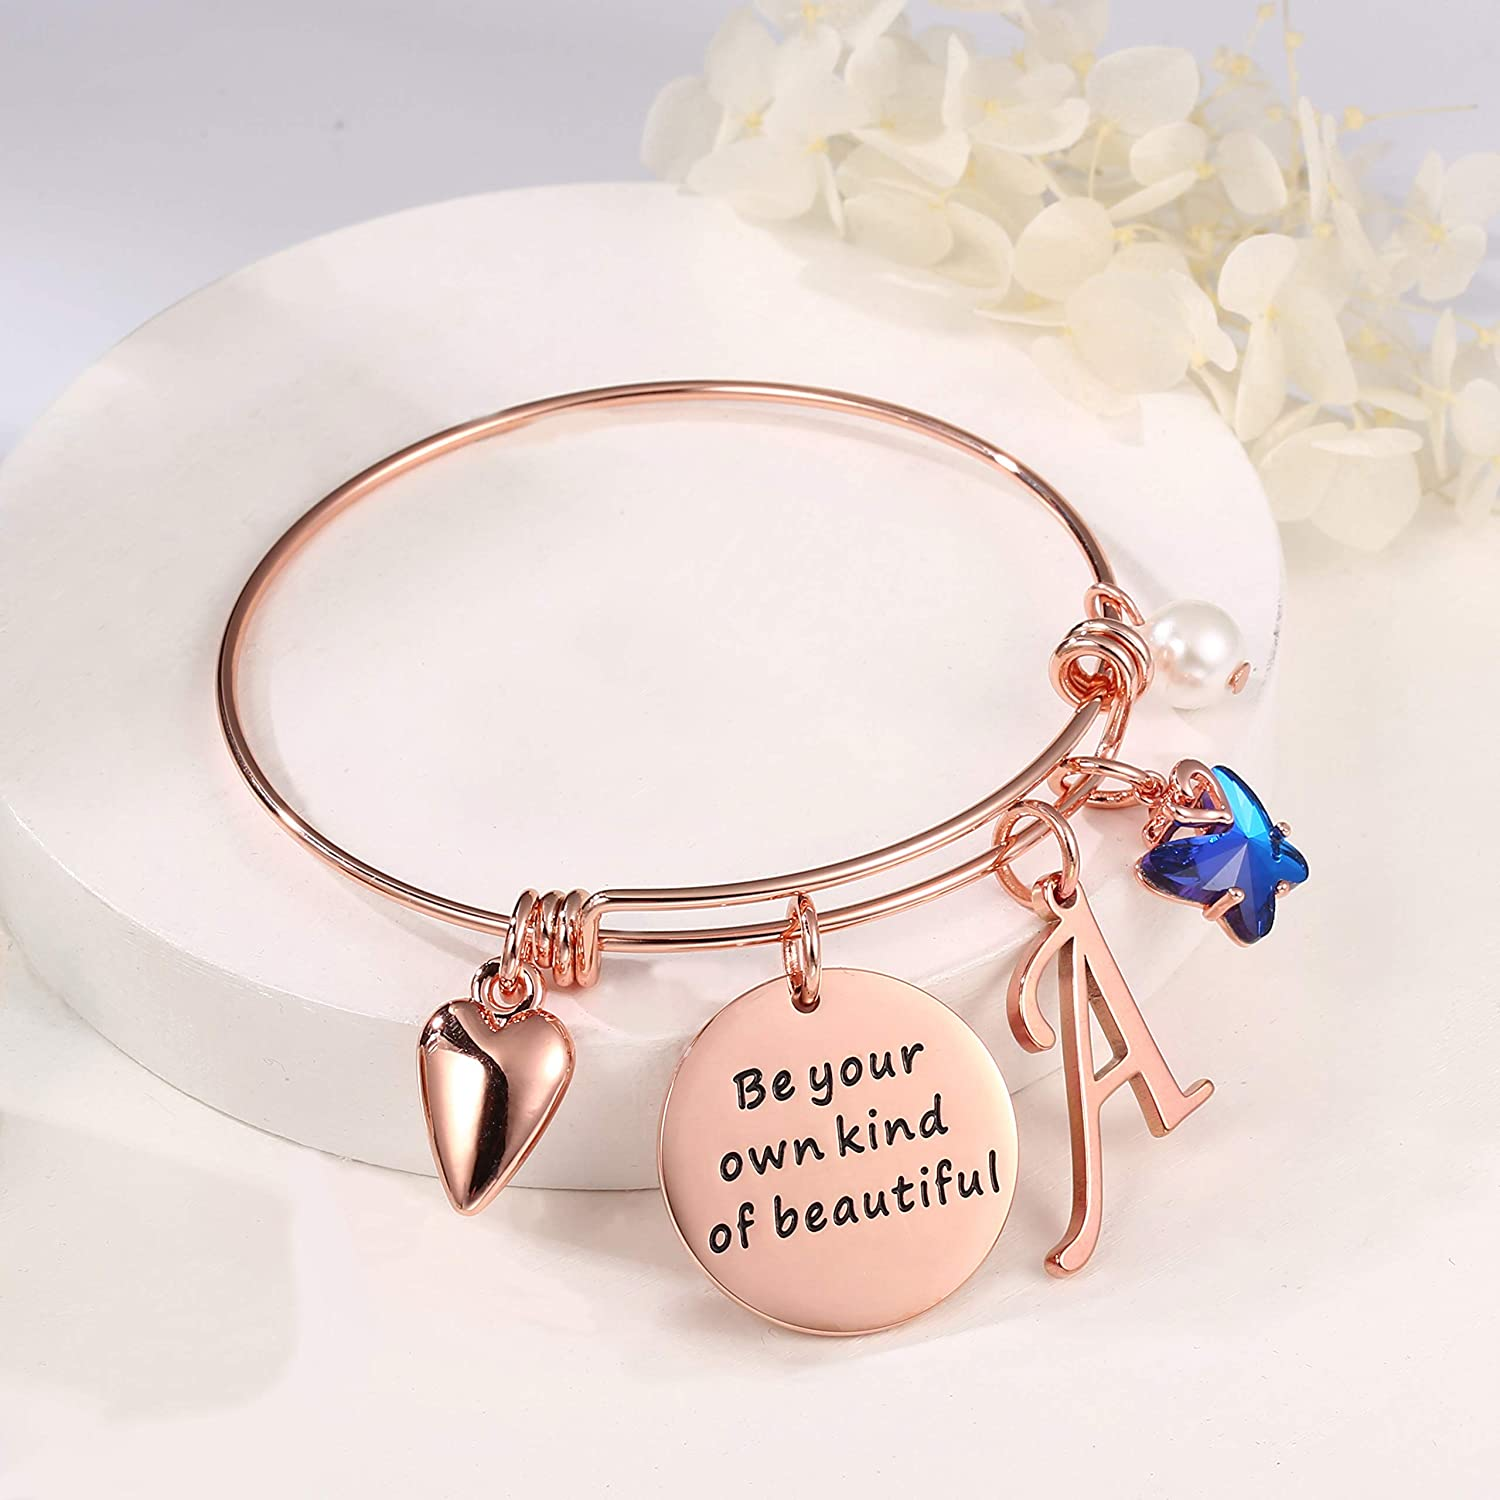 Hidepoo Butterfly Charm Bracelets for Women, Be Your Own Kind of Beautifully Rose Gold Inspirational Bangle Expandable 26 Letters Initial Charms Bracelets Jewelry Gifts for Women Girls